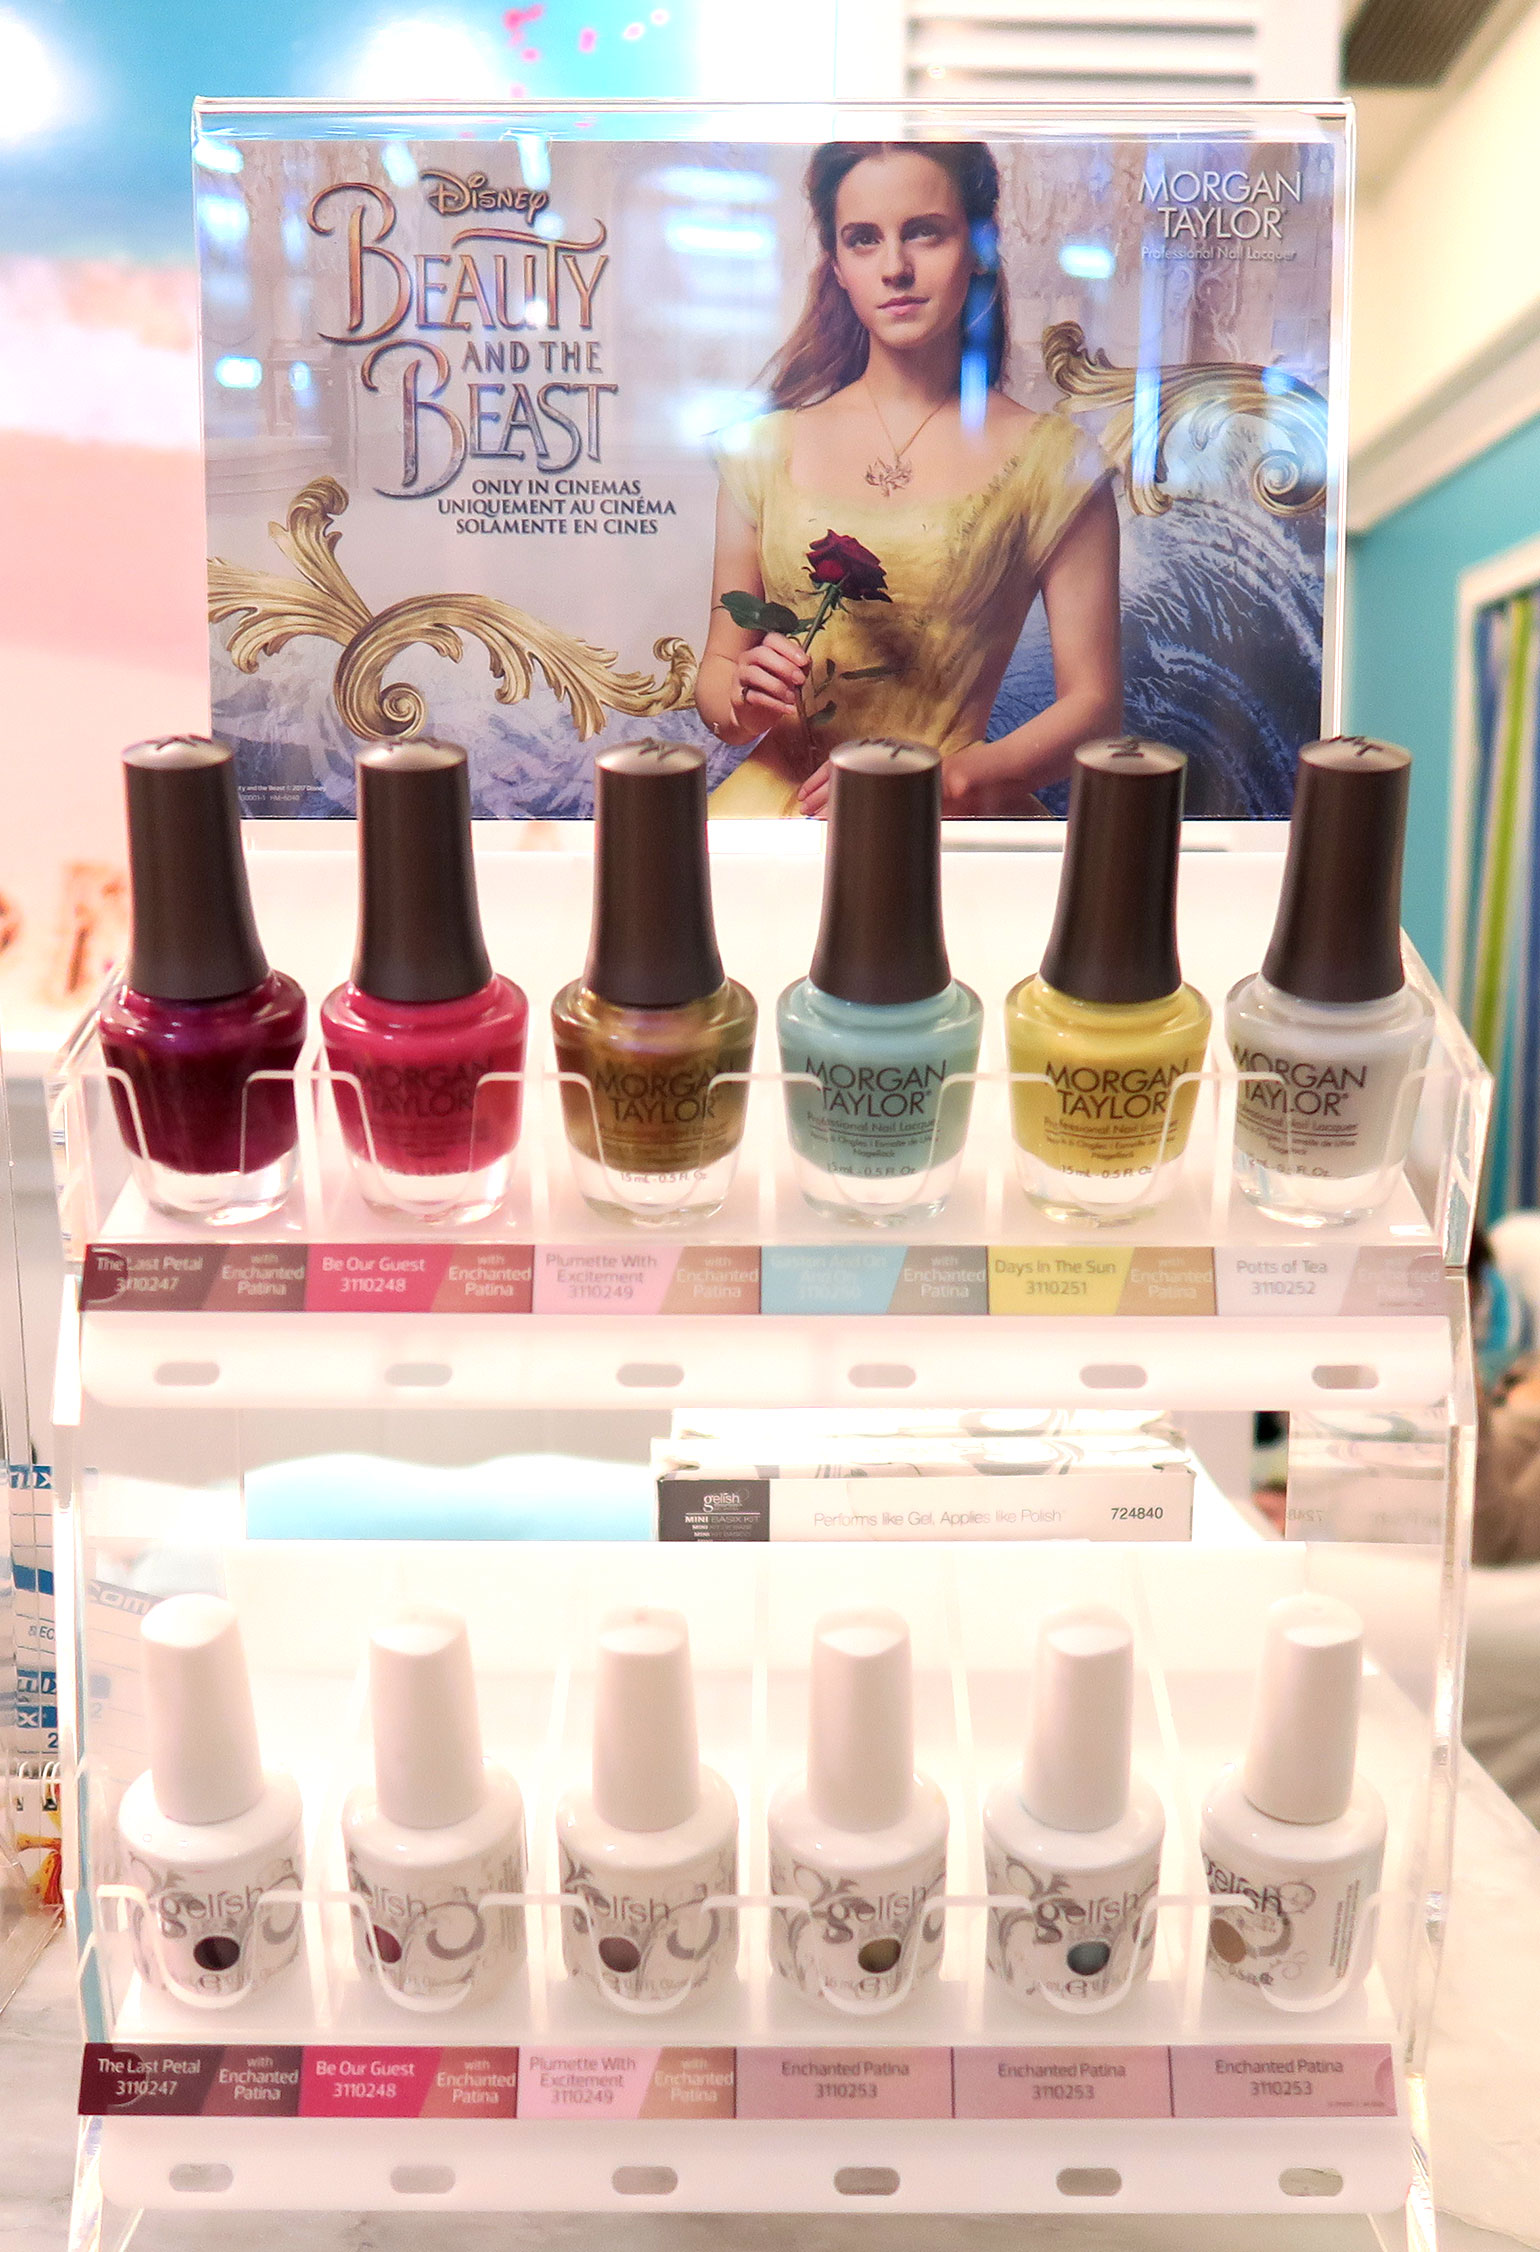 6 Morgan Taylor Beauty and the Beast Collection